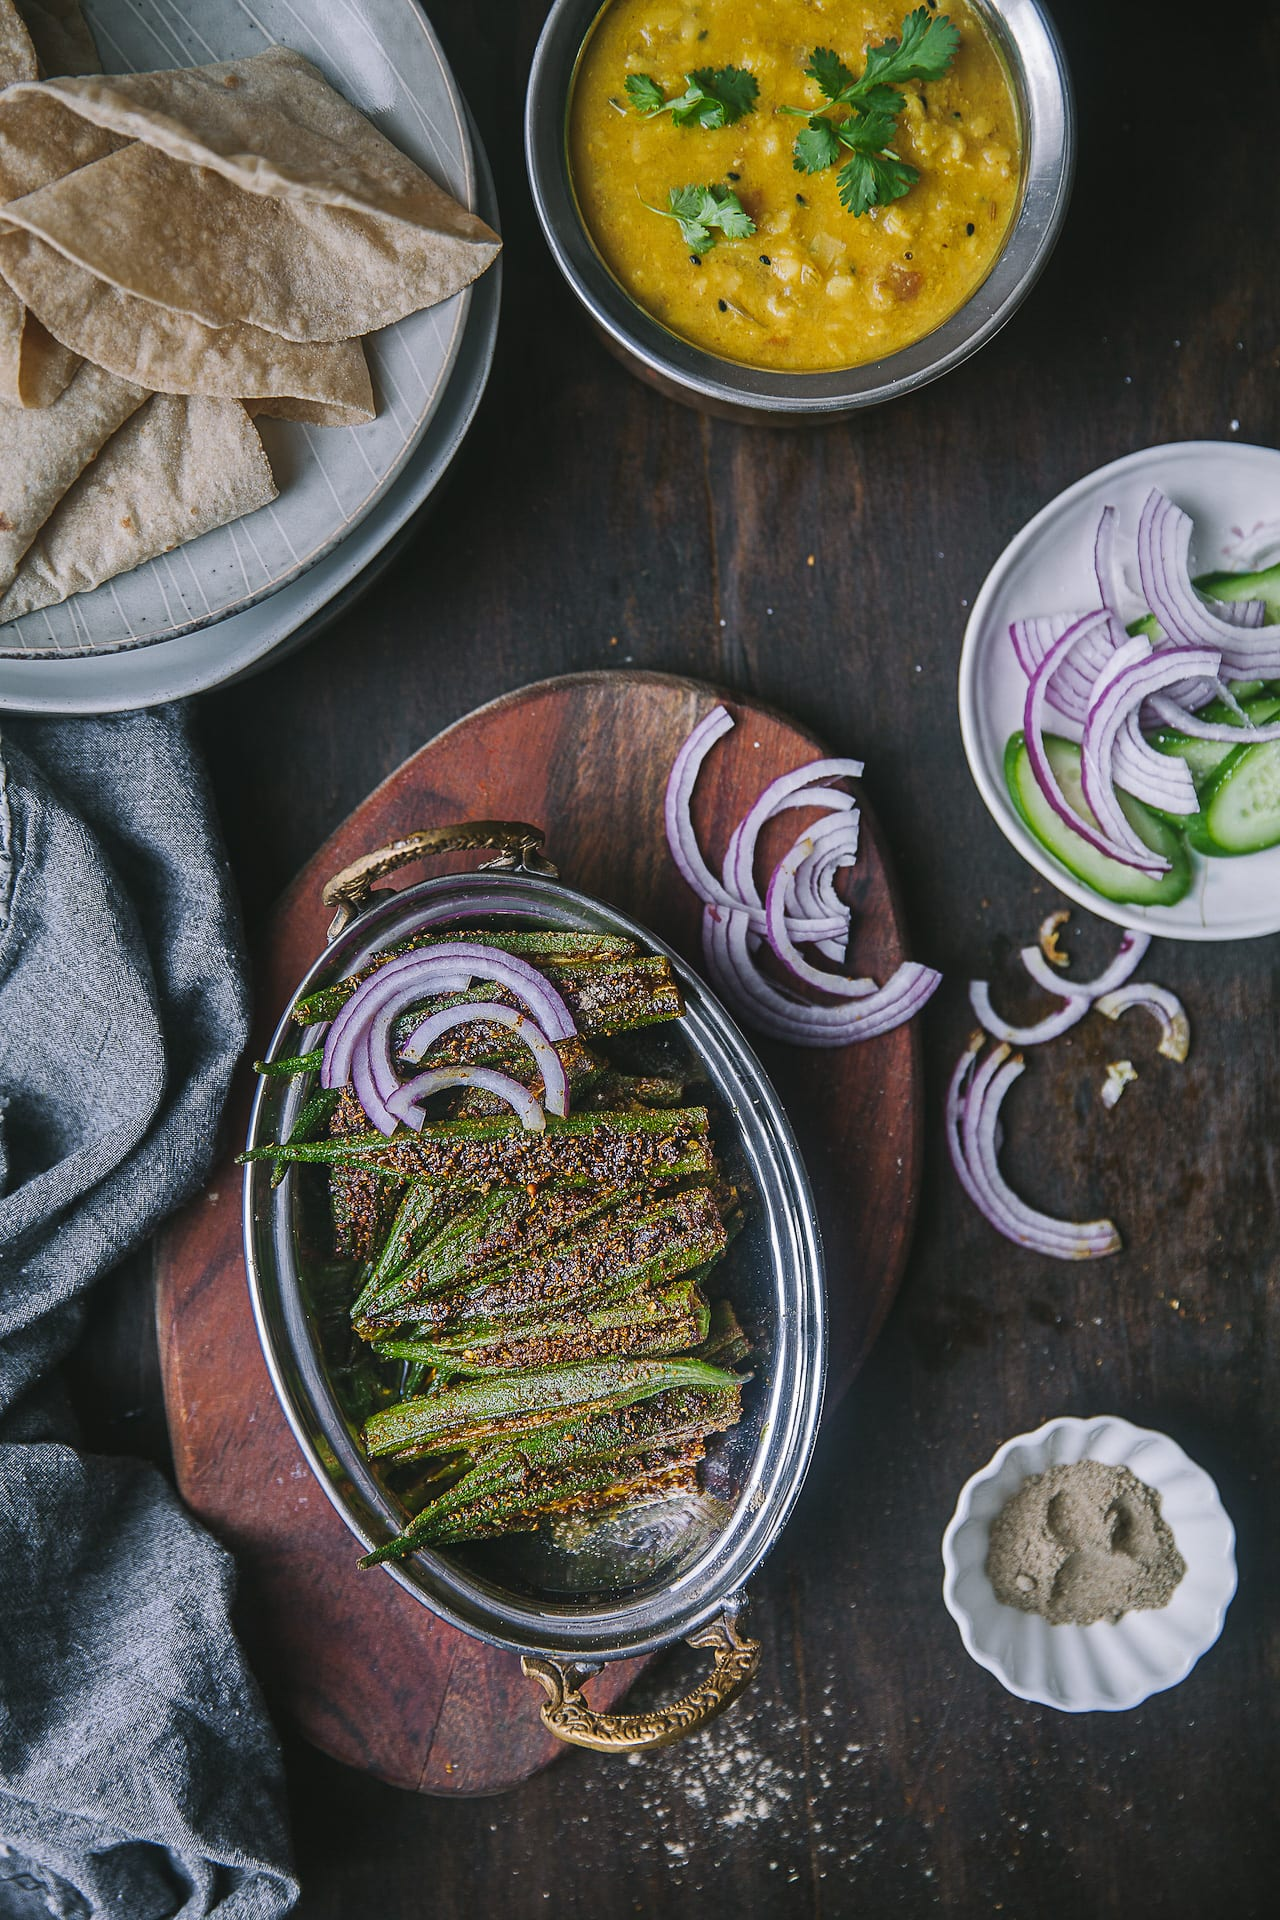 Bharwa Masala Bhindi (Spice Stuffed Okra) | Playful Cooking #okra #bhindi #playfulcooking #foodphtography